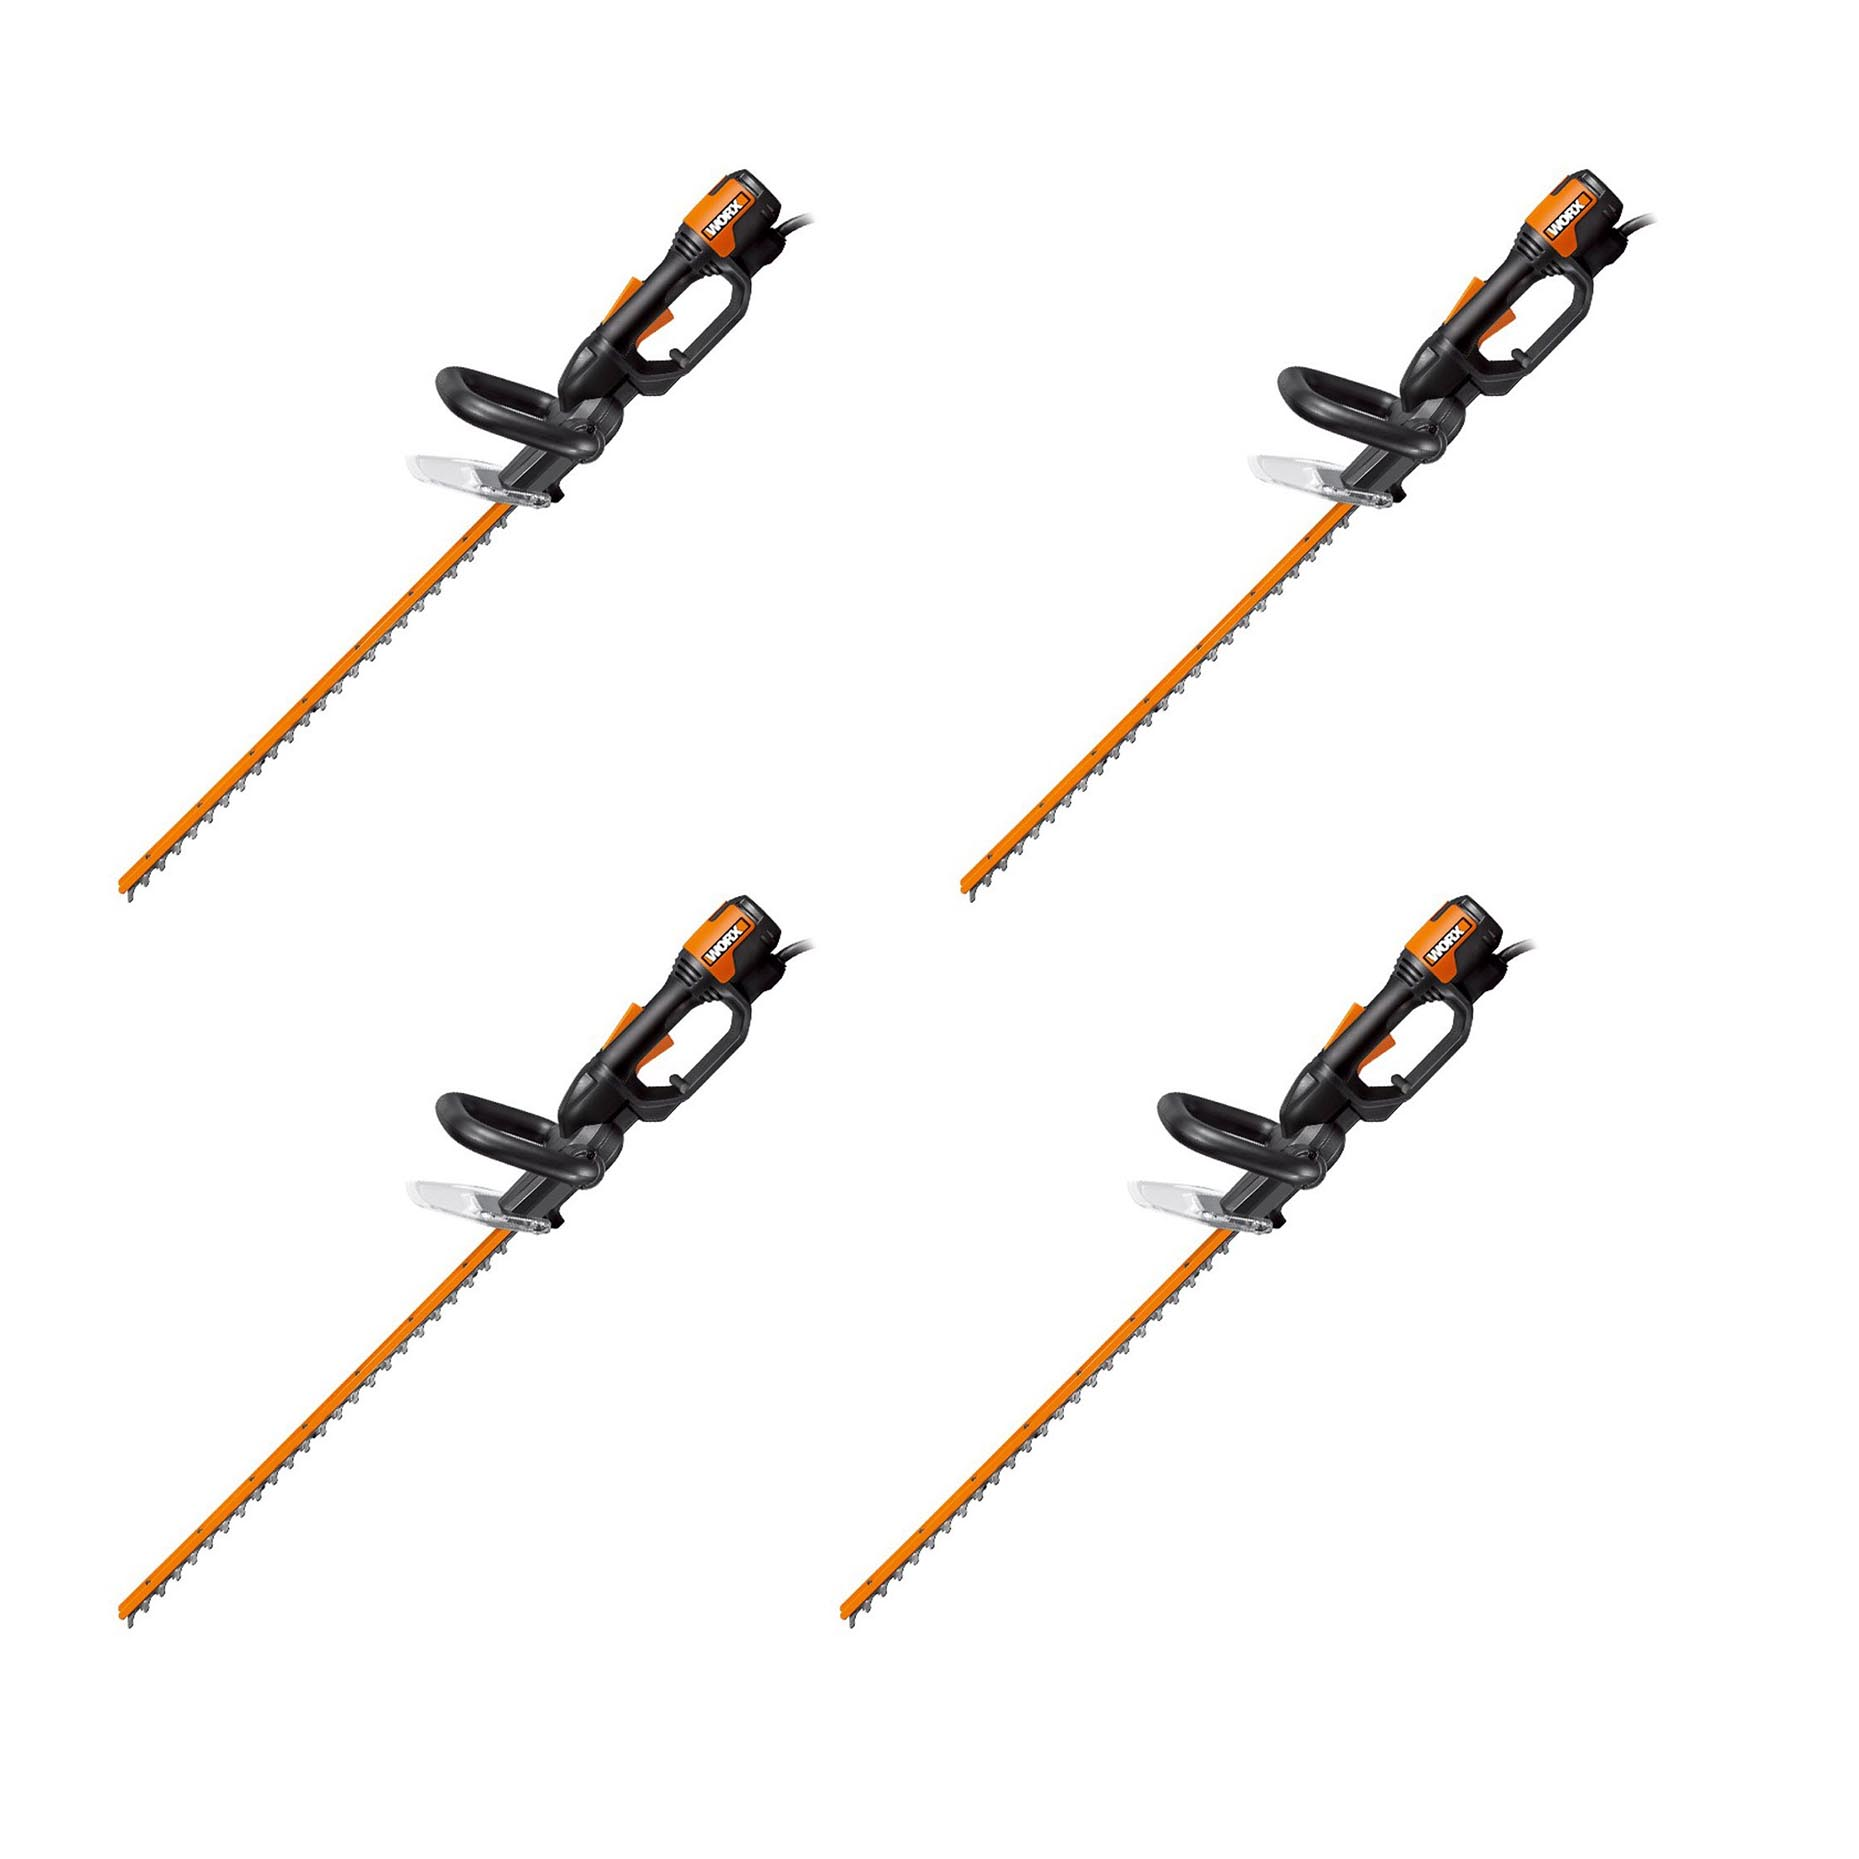 Worx WG209 24 Inch 4 Amp Lightweight Corded Electric Hedge Trimmer (4 Pack) by WORX